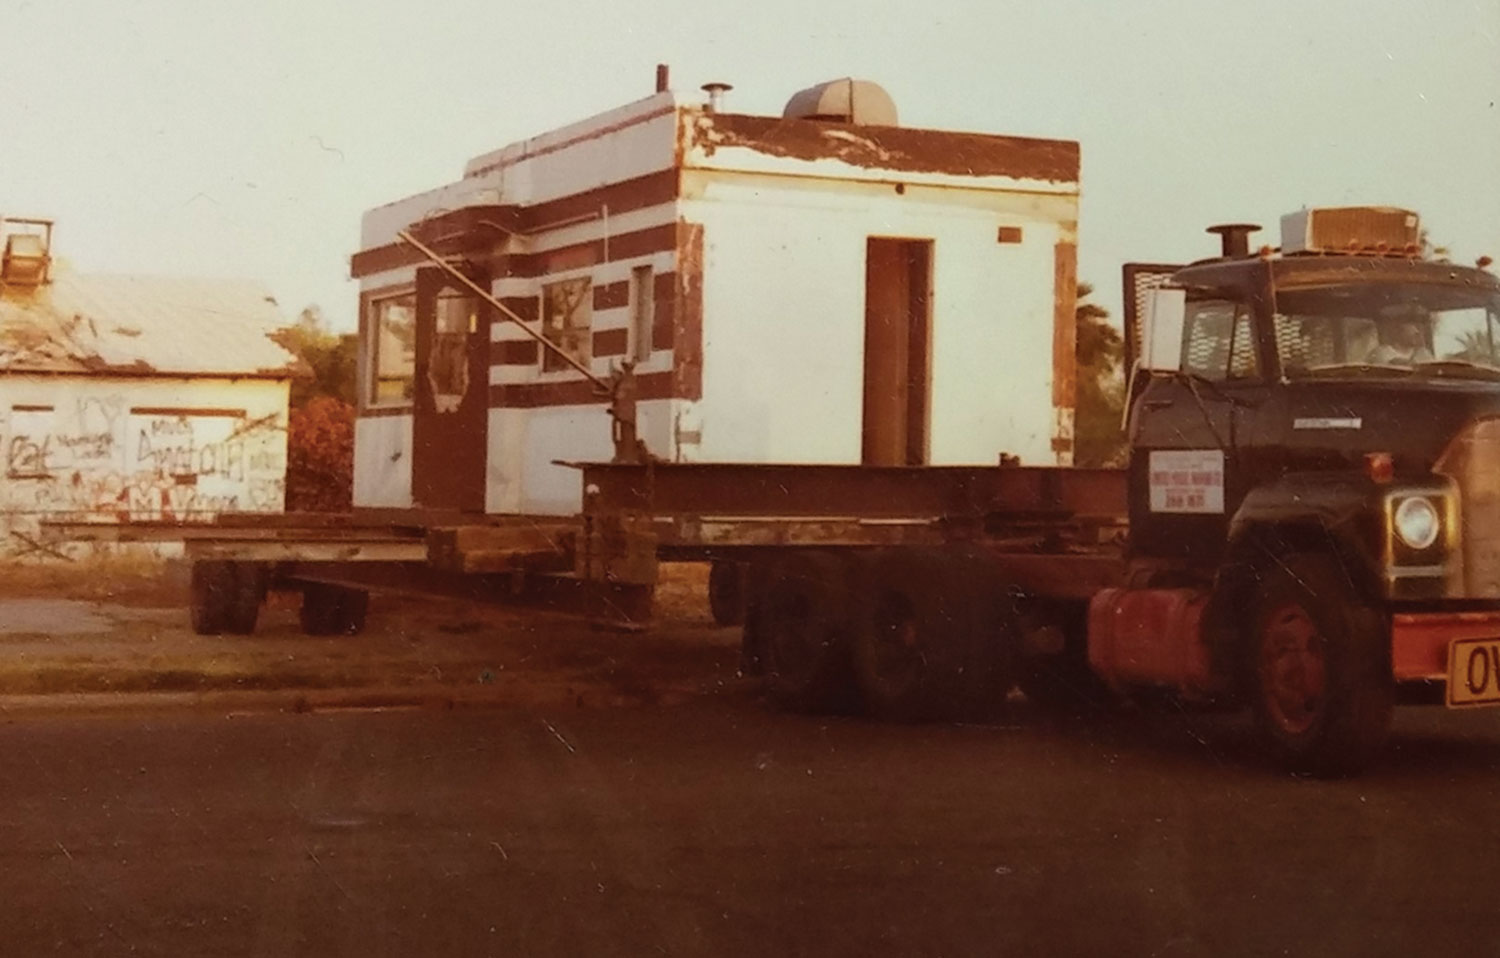 the diner being moved to its present location on Roosevelt and 10th streets,1982